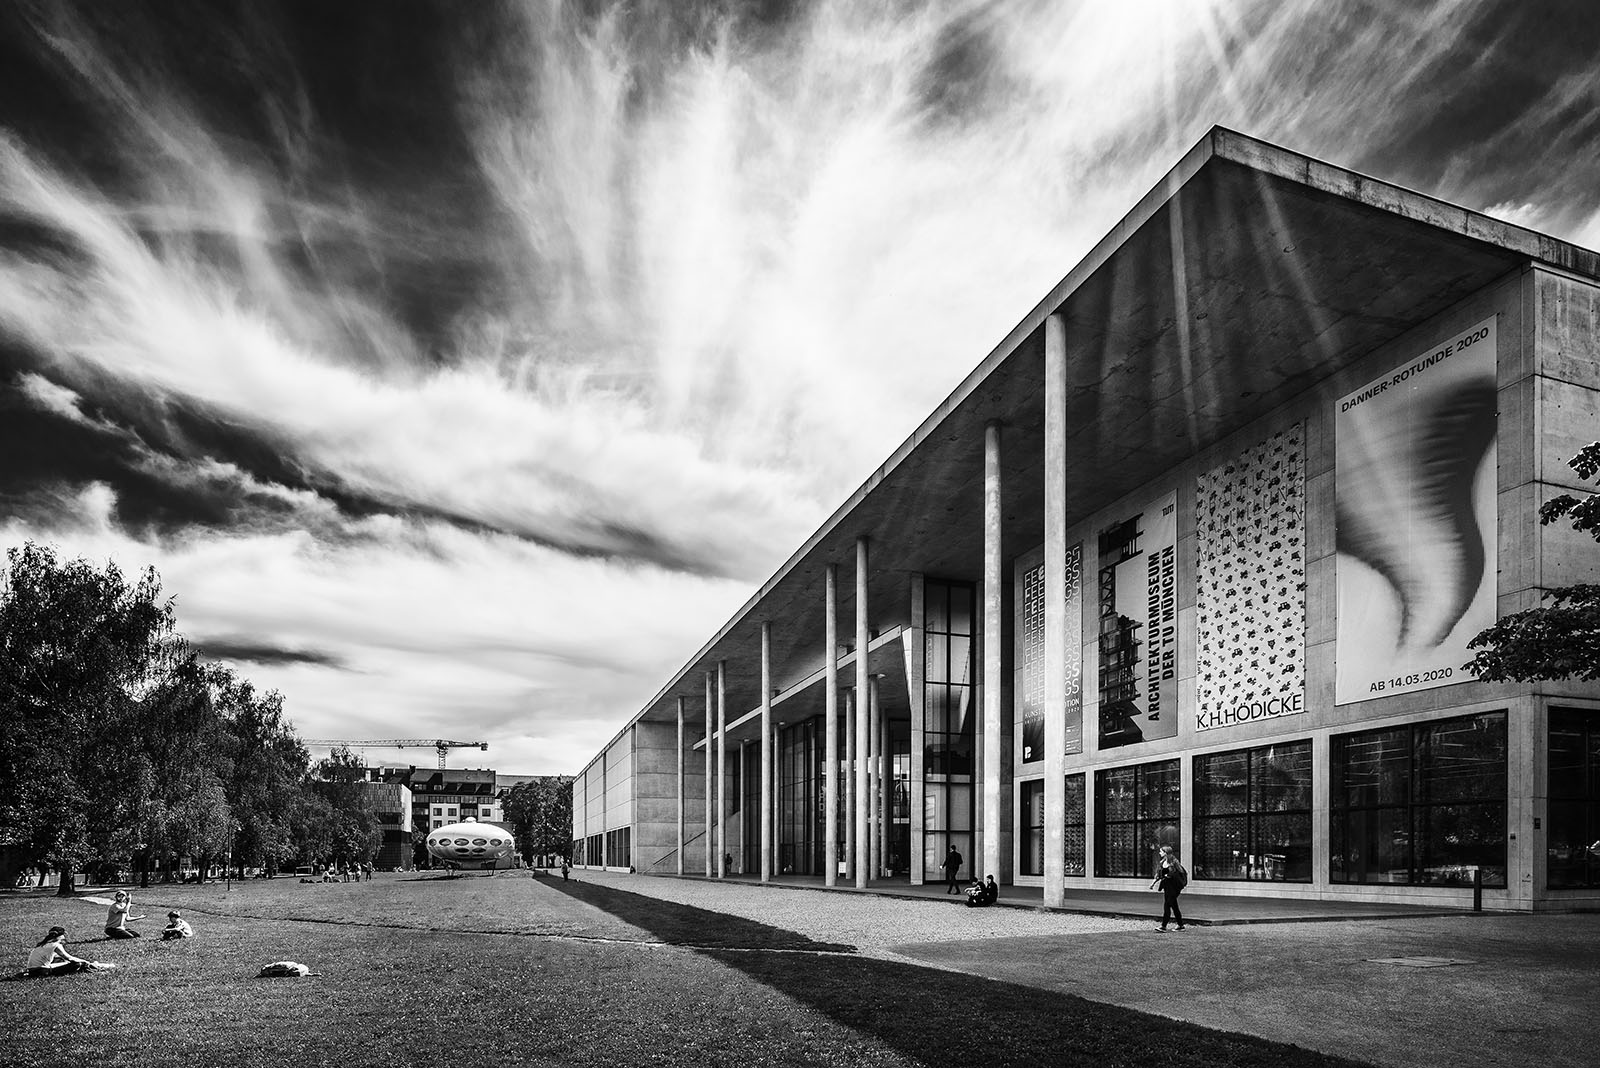 Pinakothek der Moderne, Munich, Germany - Architect: Stephan Braunfels - Black & White Fine Art Architecture - Philipp Apler - MONOPHIL